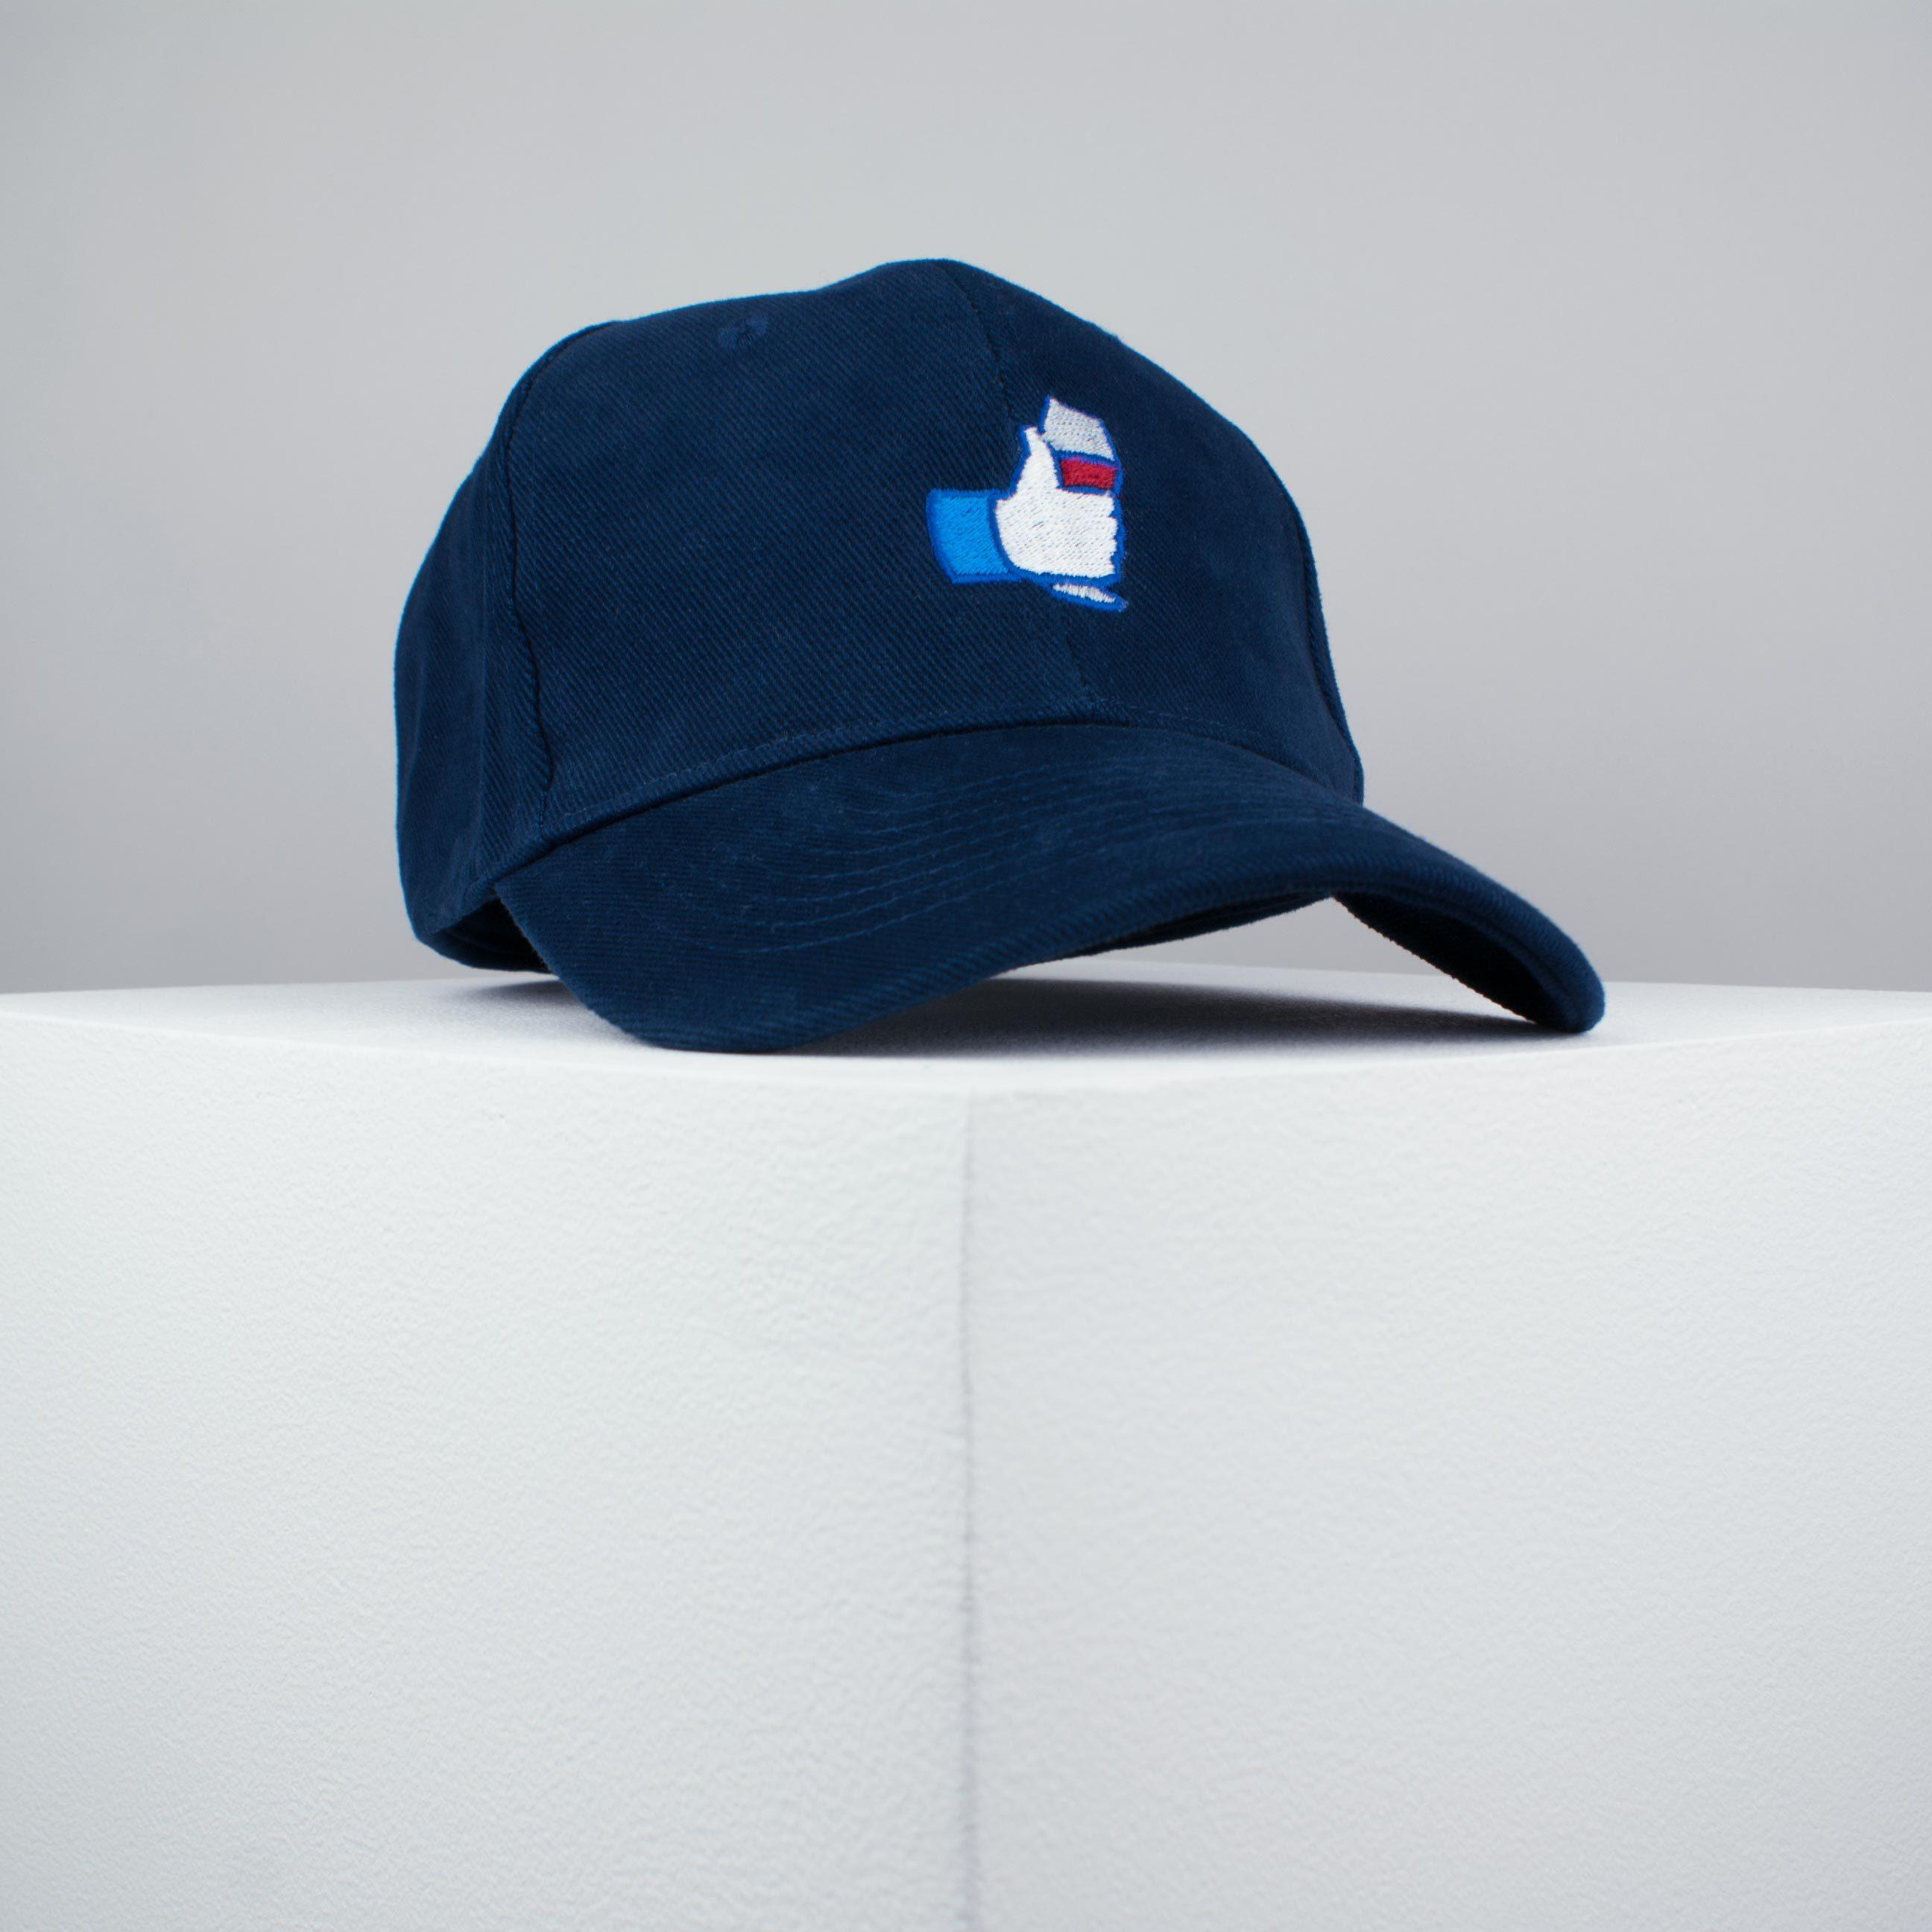 Like wine embroidered baseball cap navy   wine   patches   vegan    embroidery   patch ... c0d1ecd473c0